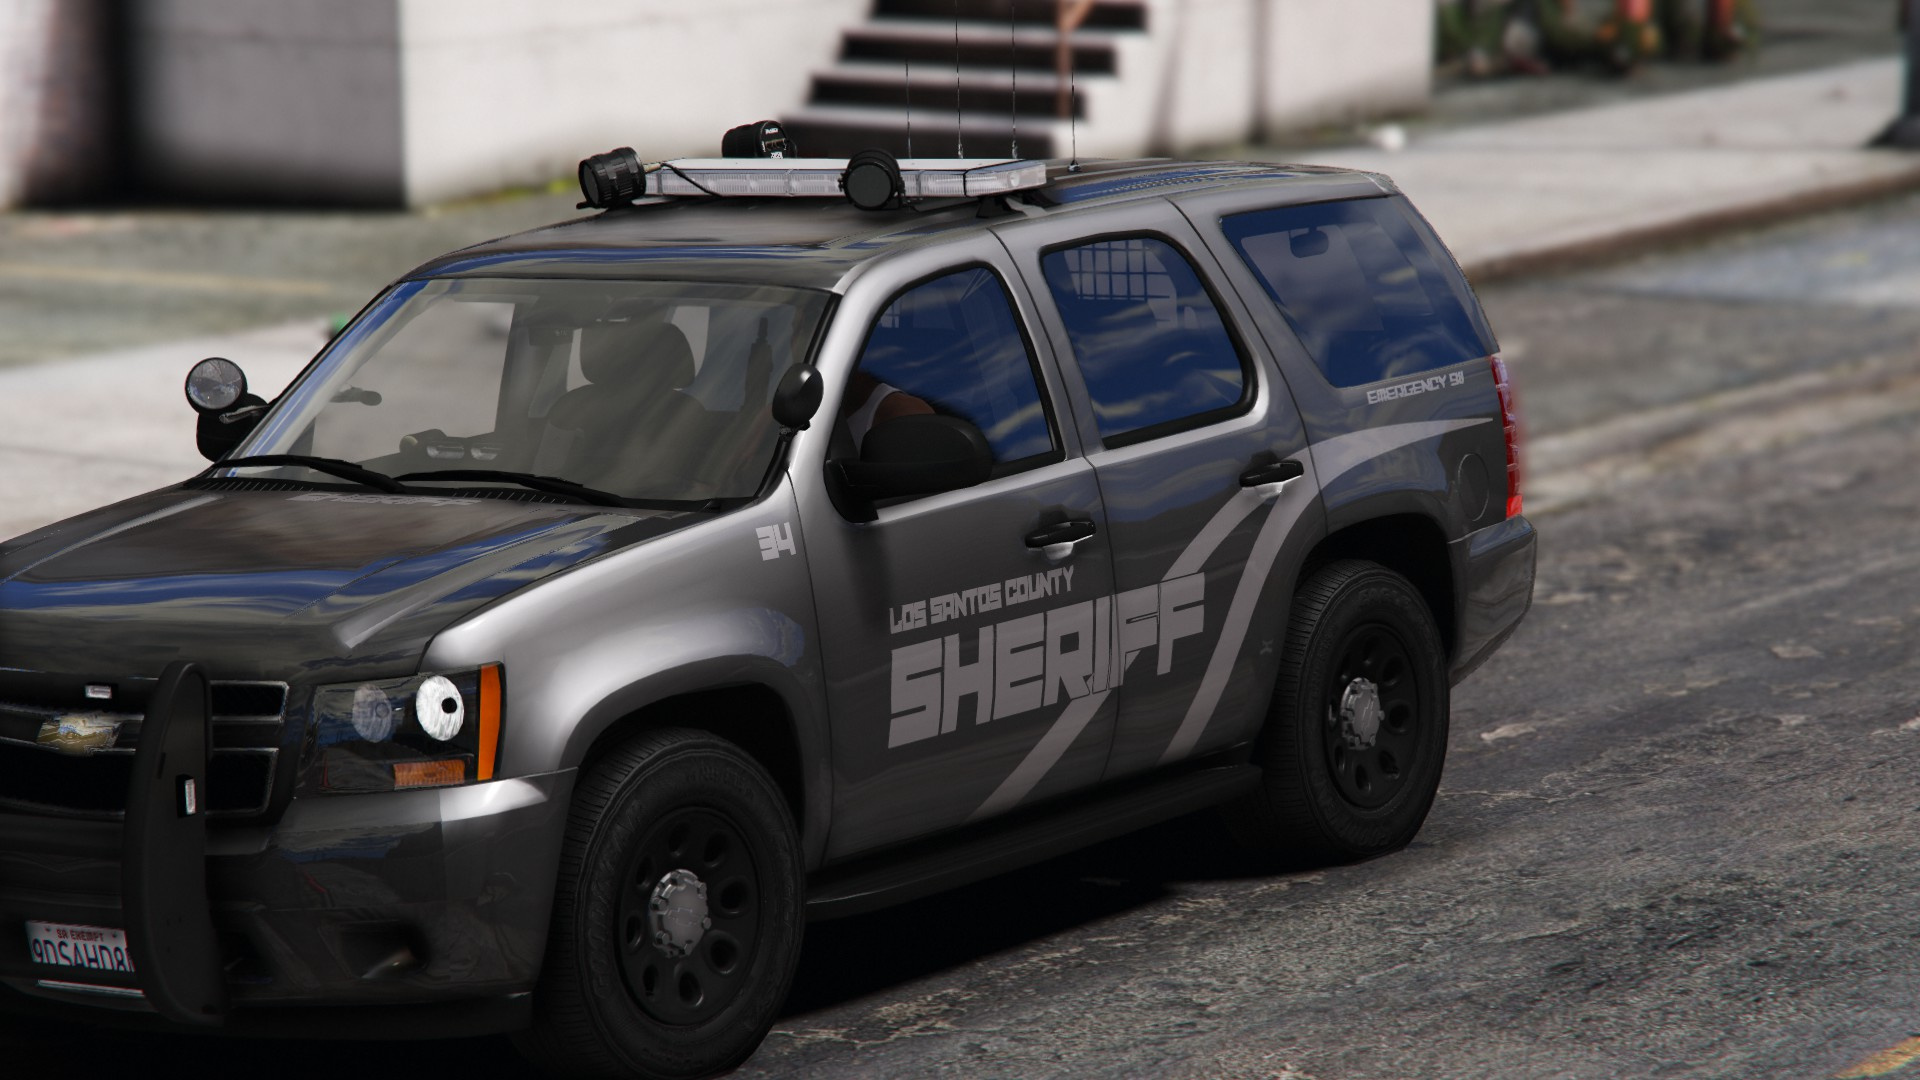 4K]Los Santos Sheriff Department pack - GTA5-Mods com